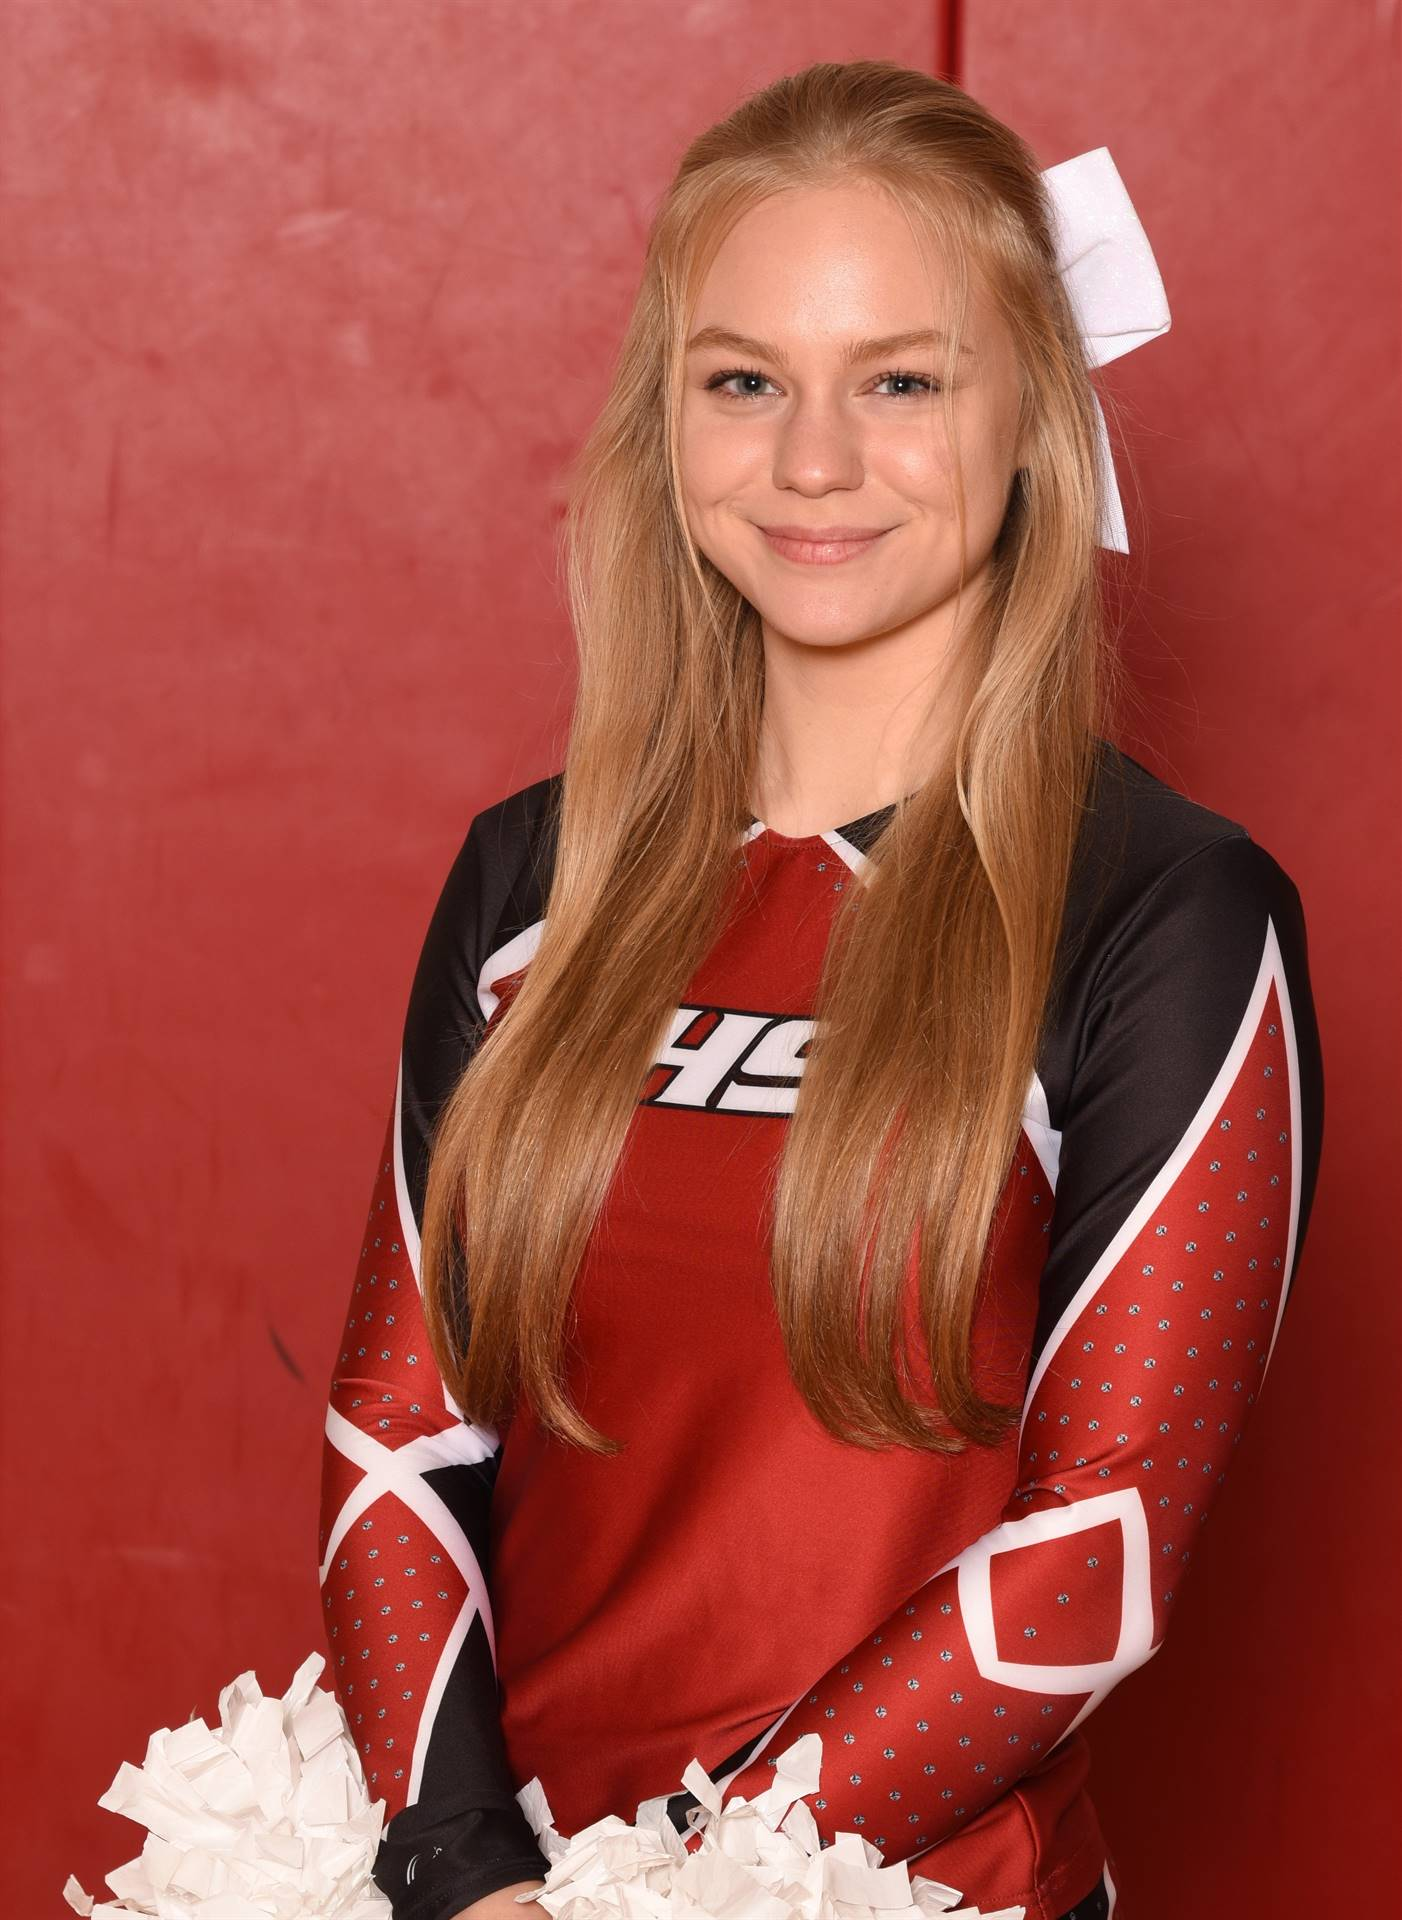 Senior Head Shot Photo Ashton Wolfe - Cheerleading